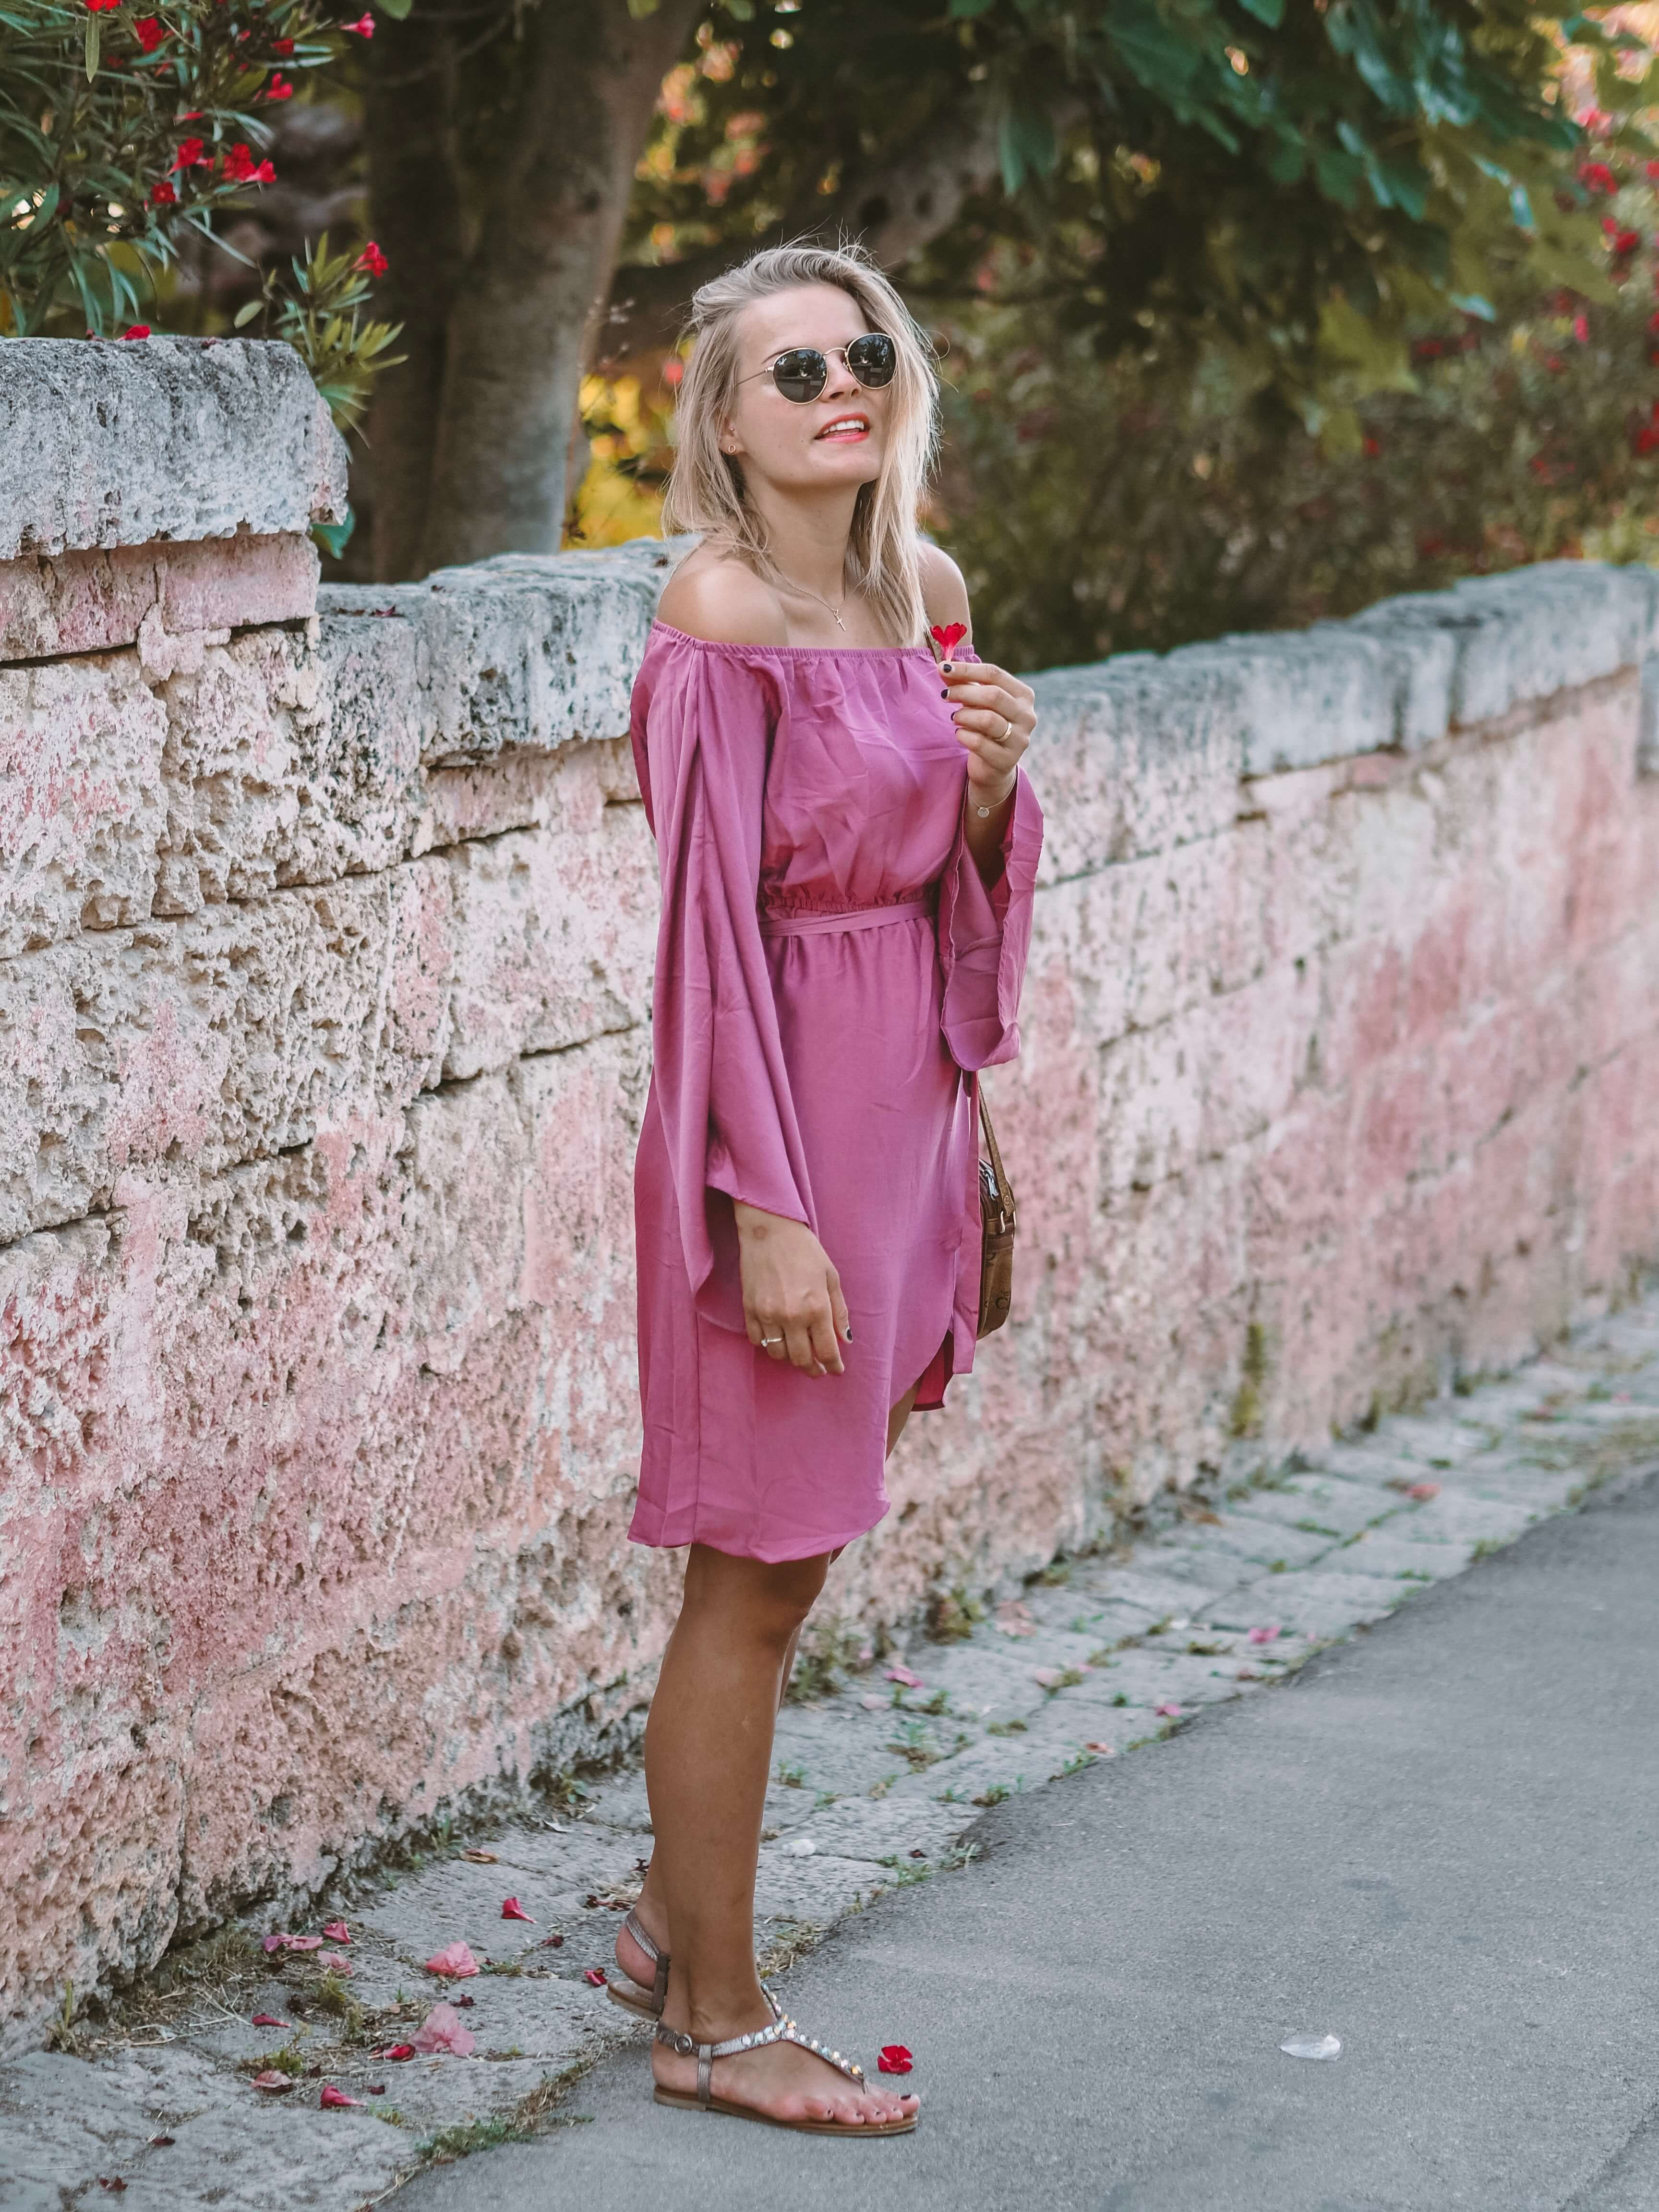 outfit - a little touch of pink - la katy fox | sommerkleid